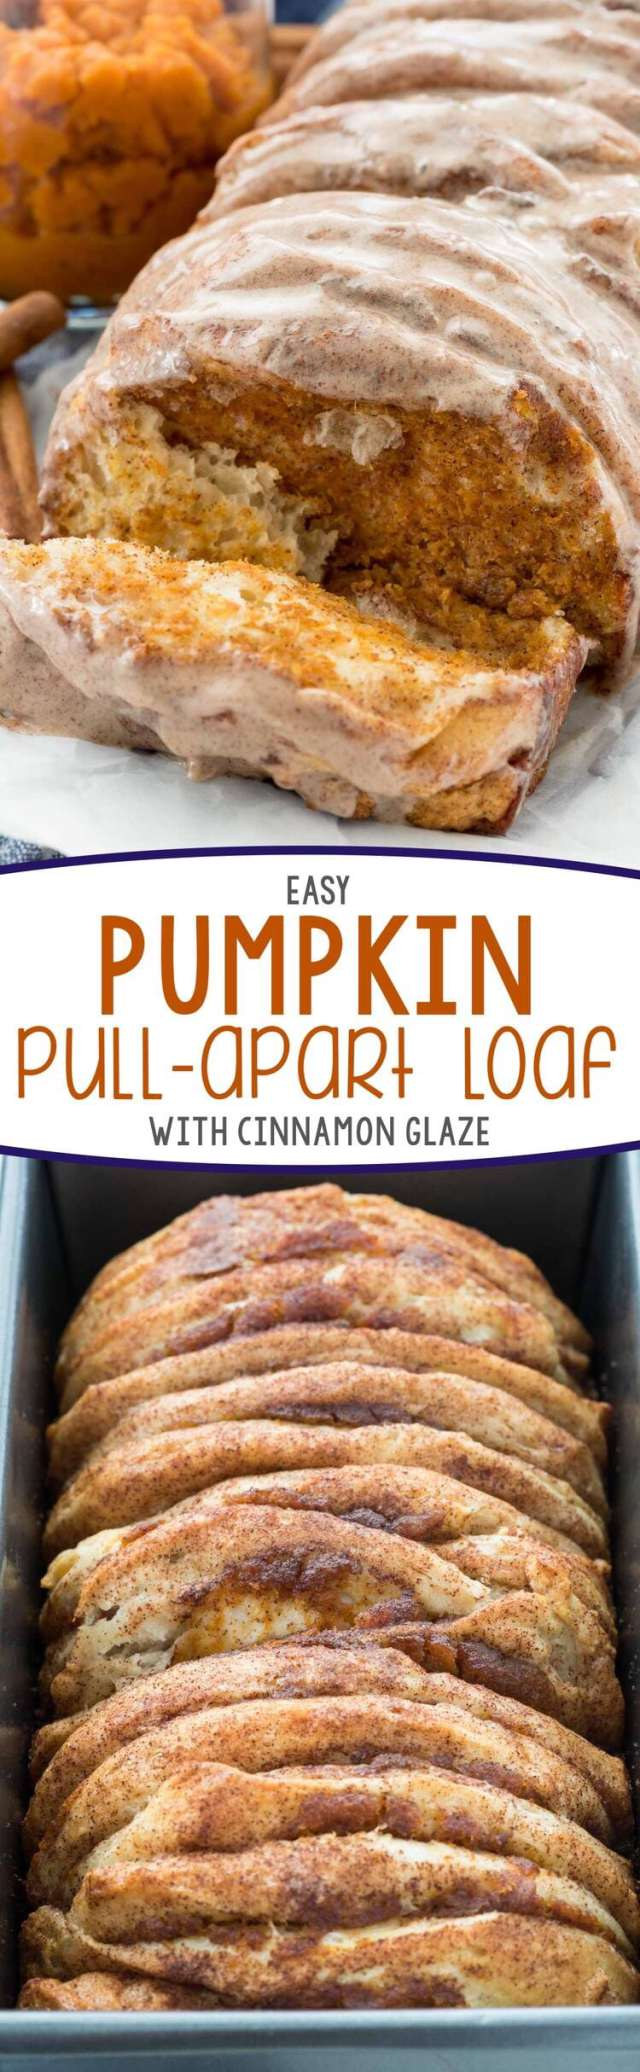 Pumpkin Spice Recipes: Easy Pumpkin Pull-Apart Loaf